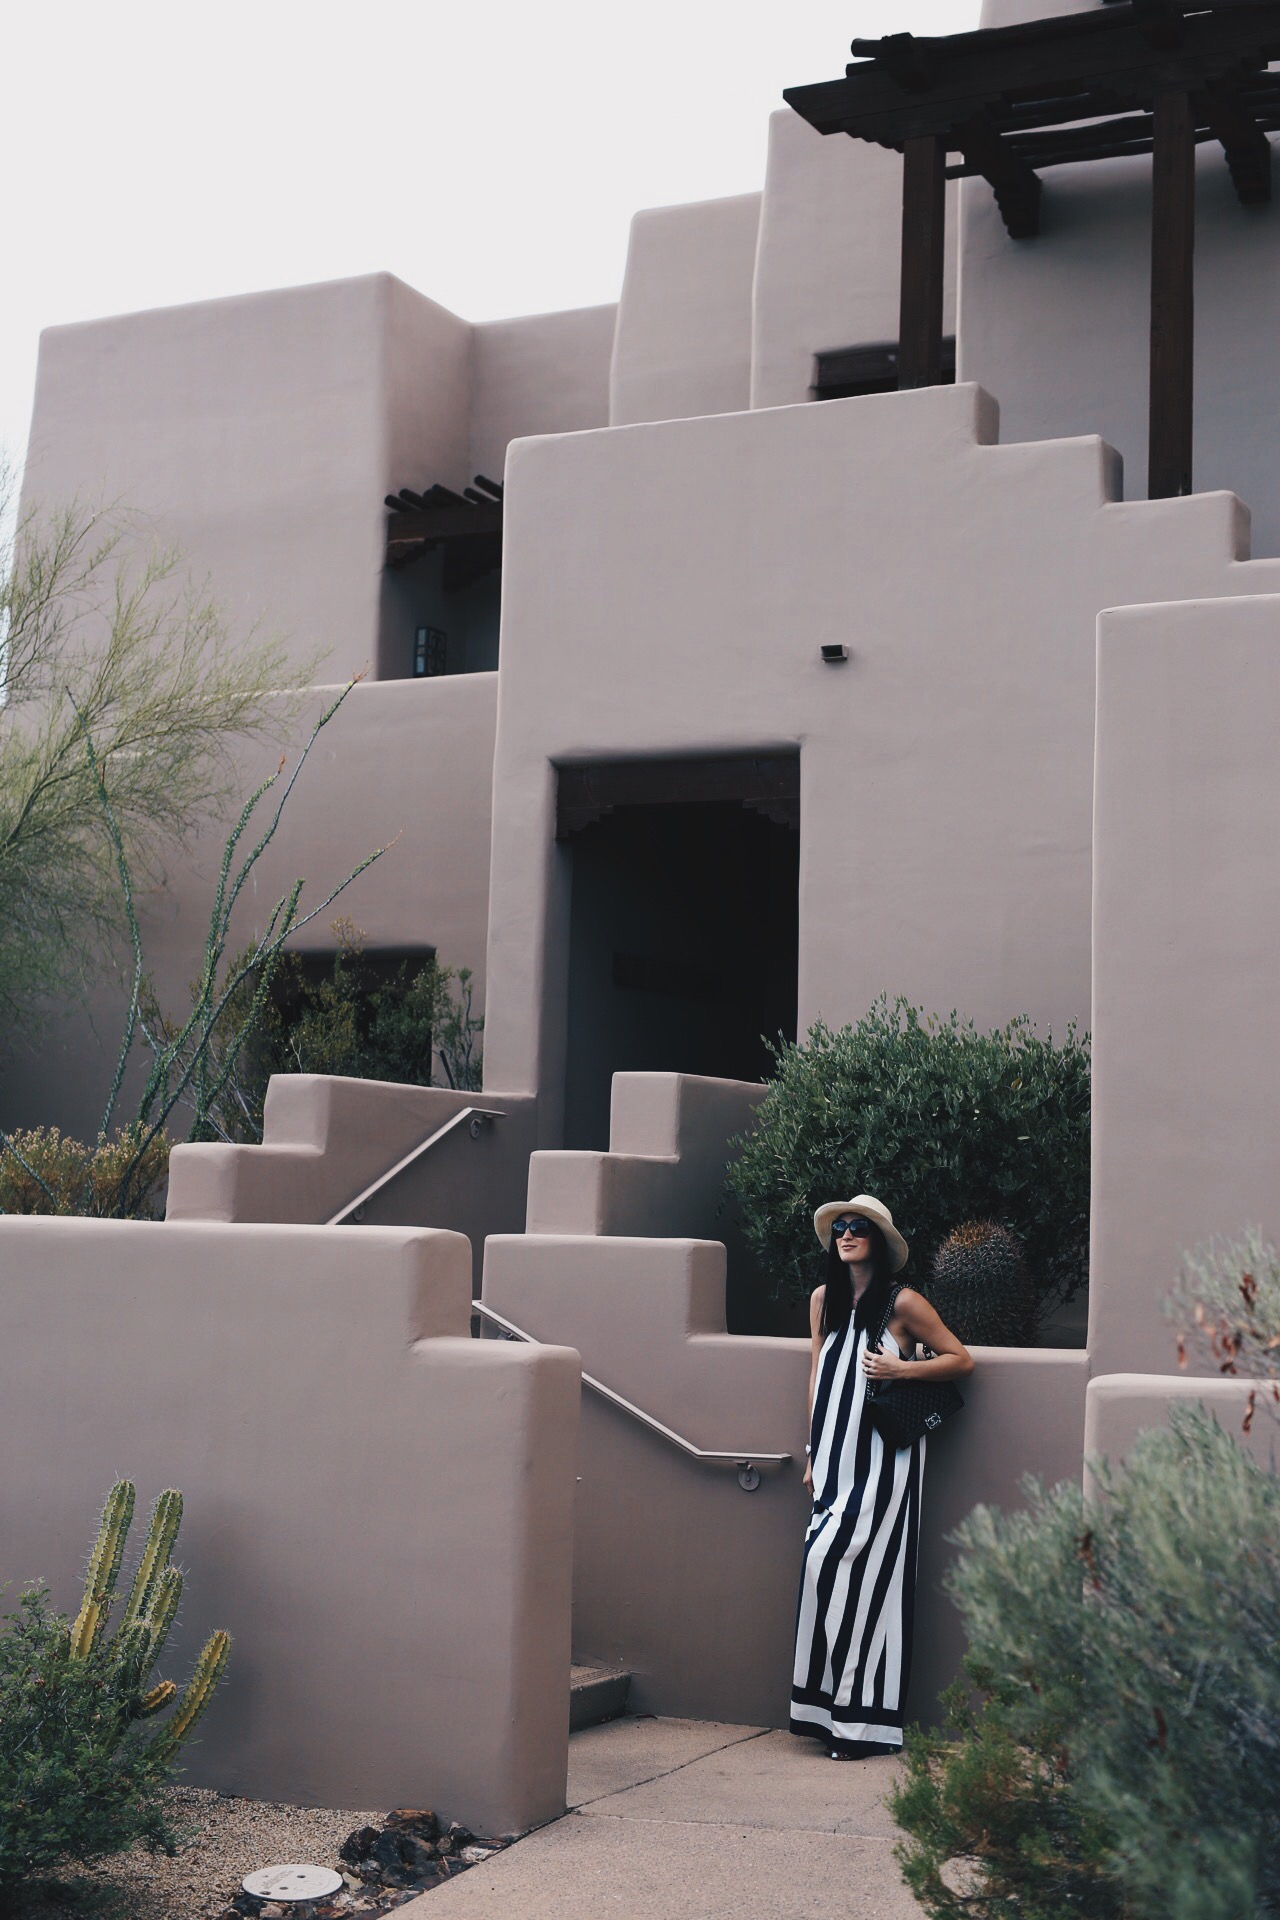 Scottsdale Minimoon | summer fashion tips | summer outfit ideas | summer style tips | what to wear for summer | warm weather fashion | fashion for summer | style tips for summer | outfit ideas for summer || Dressed to Kill